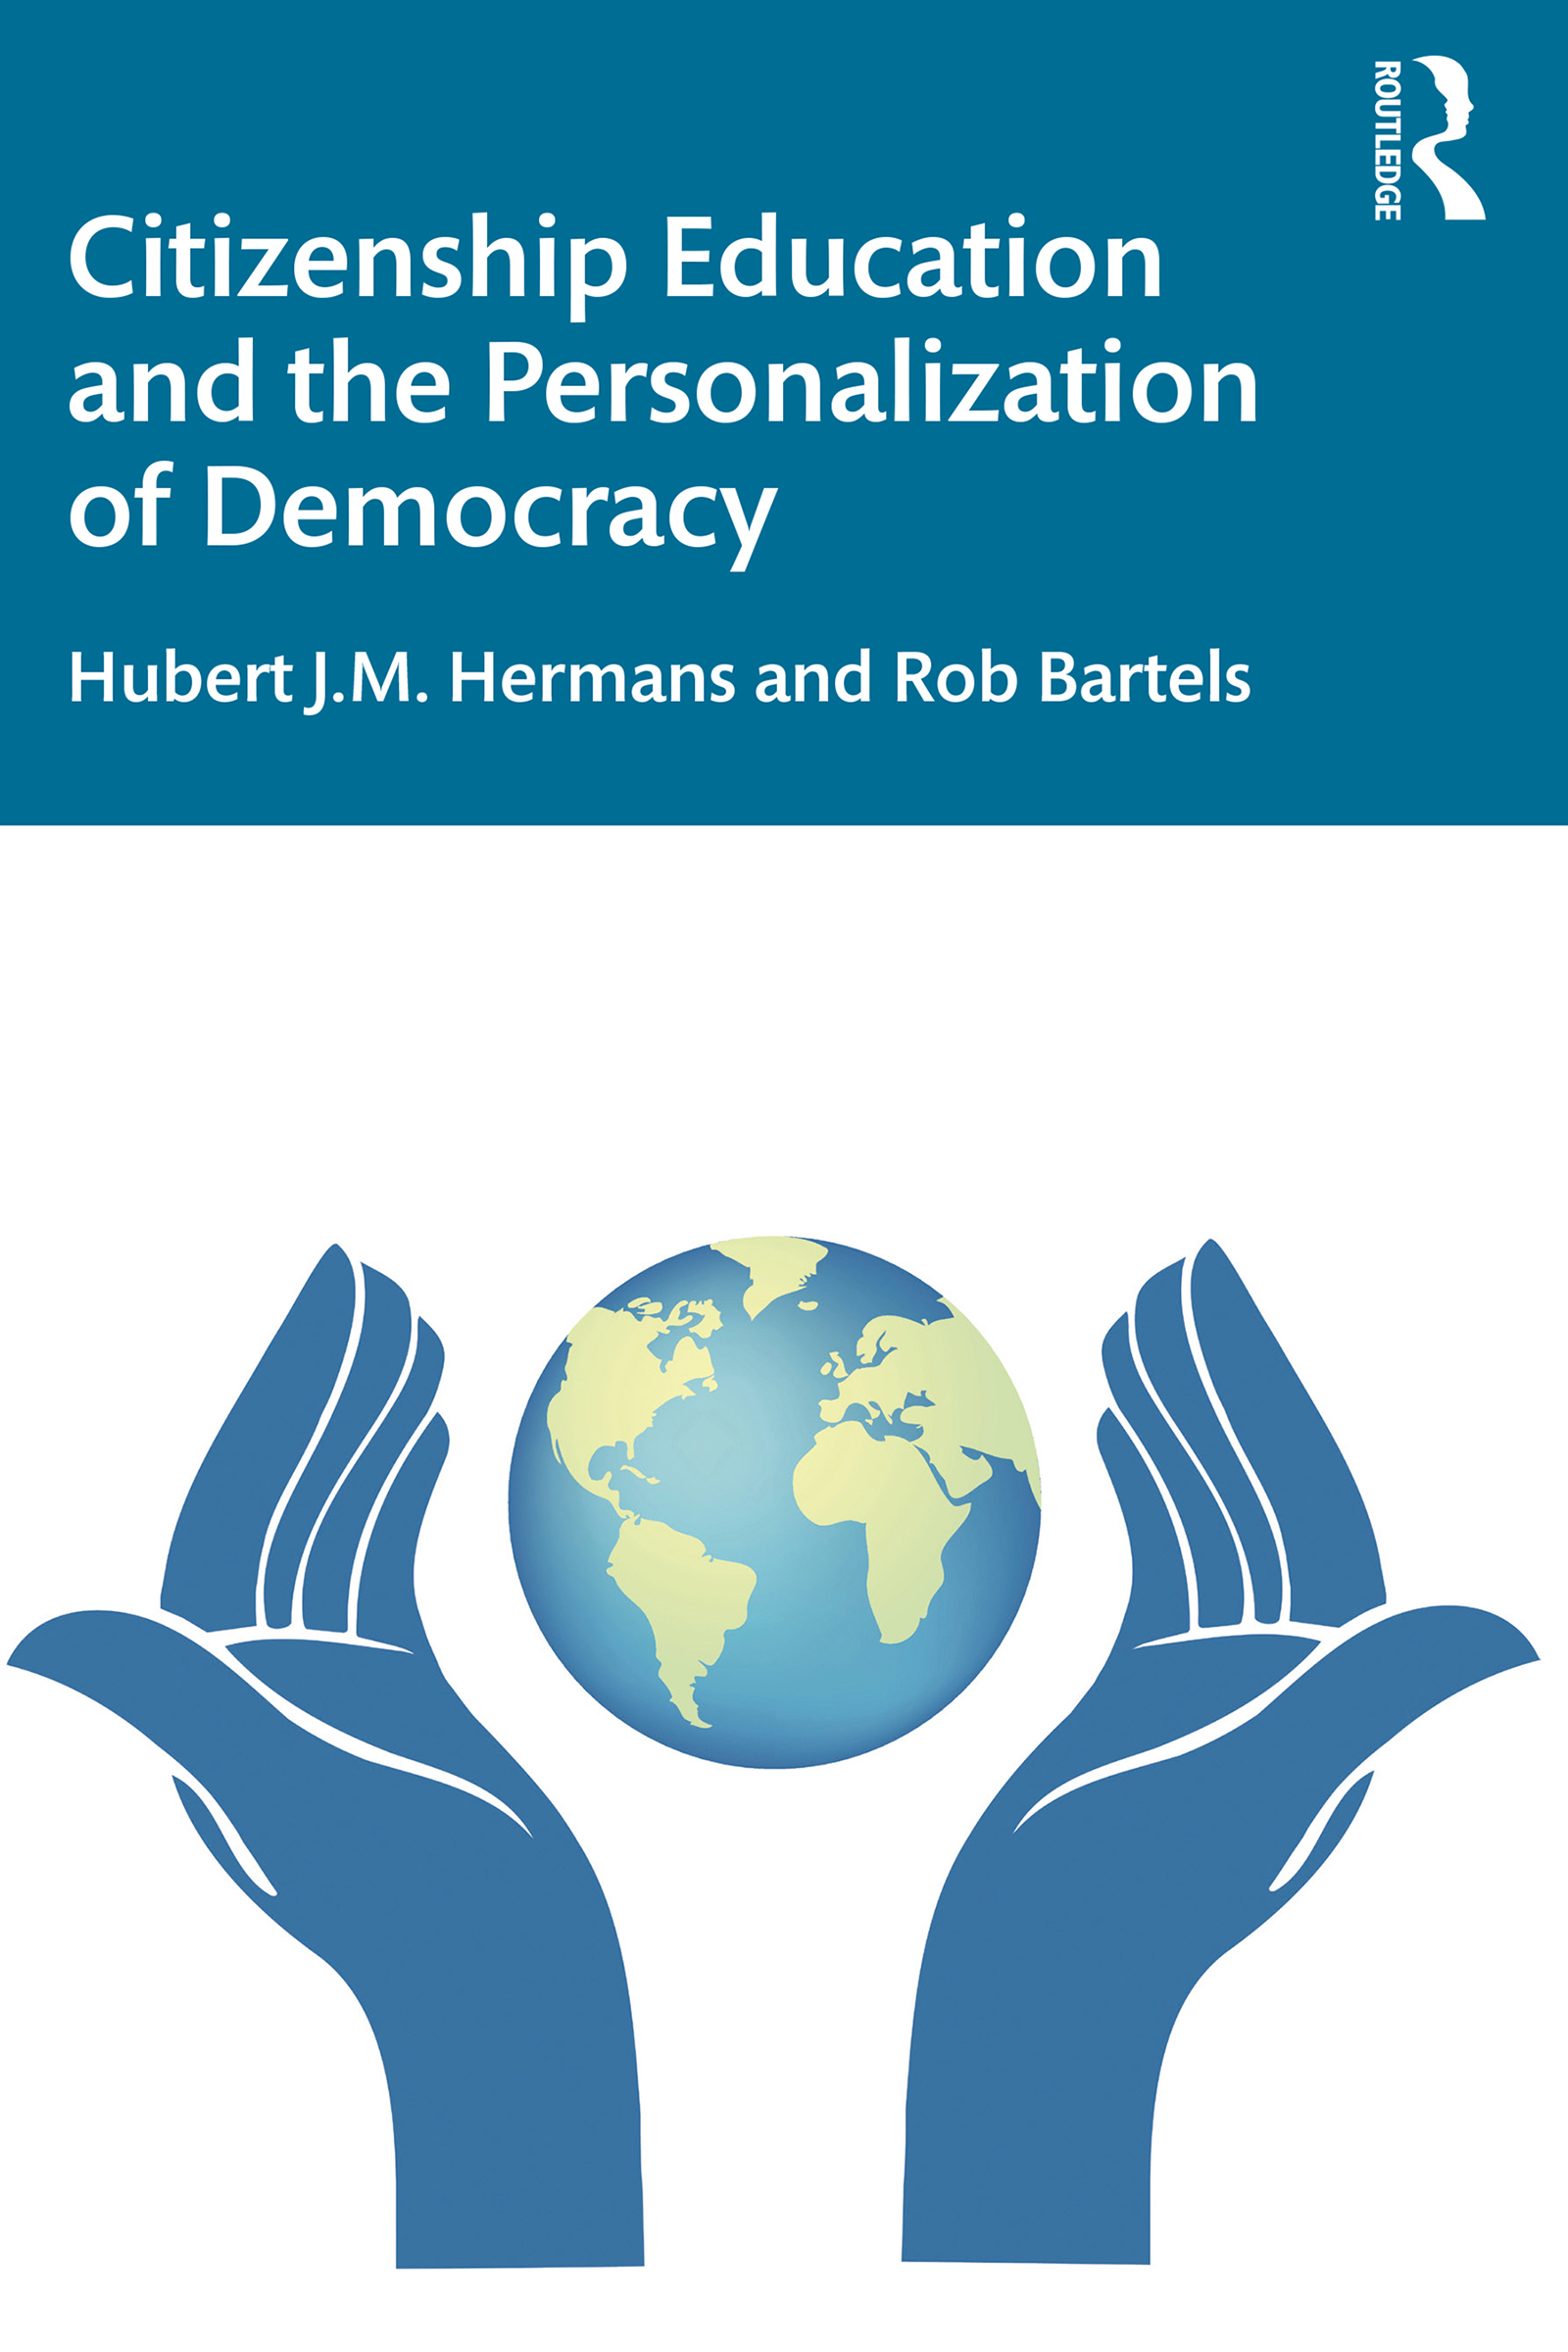 Citizenship Education and the Personalization of Democracy